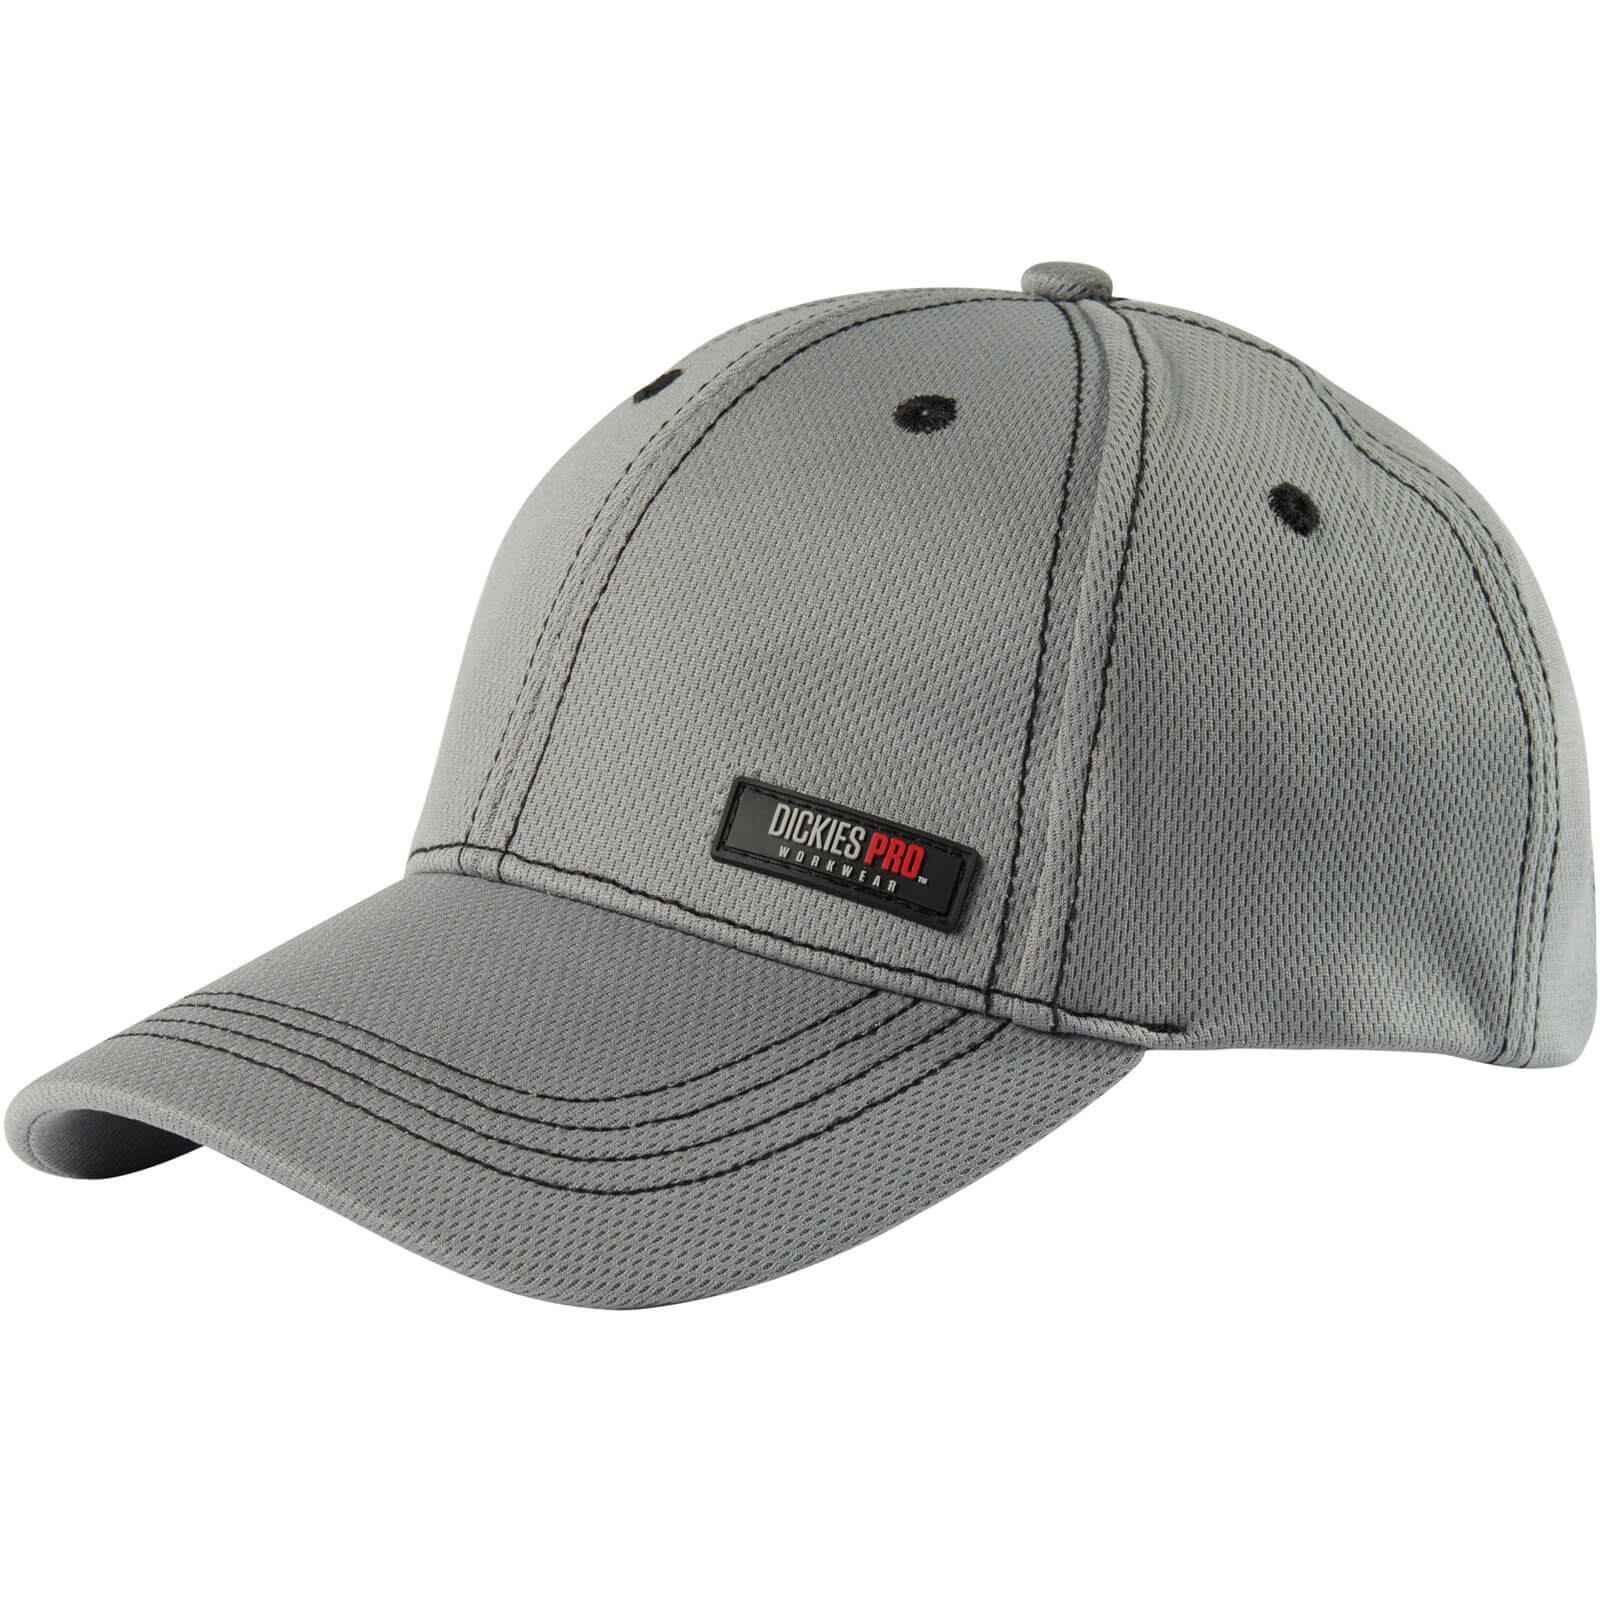 Image of Dickies Pro Cap Grey/ Black One Size